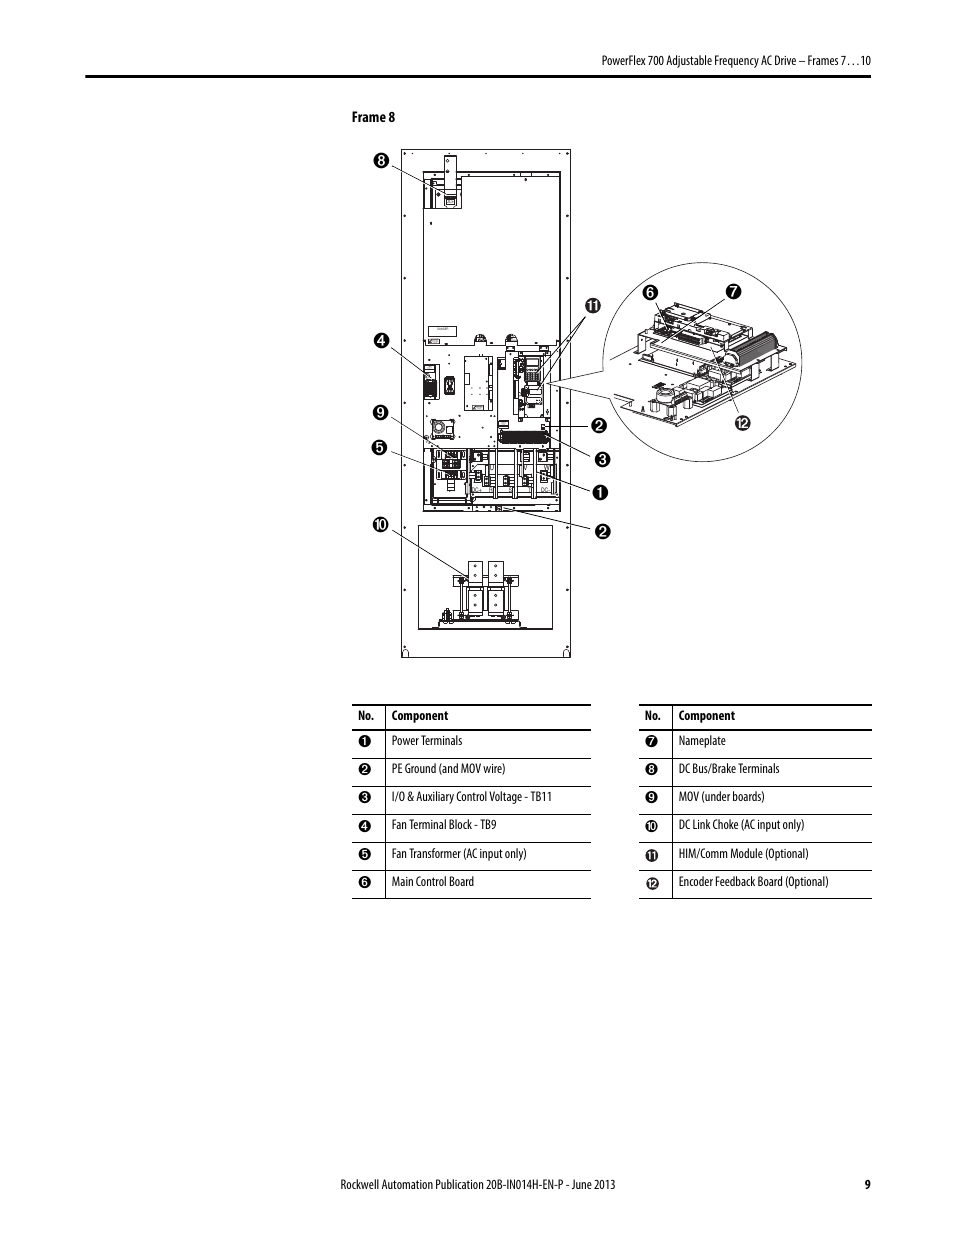 powerflex 700 wiring diagram brake dc